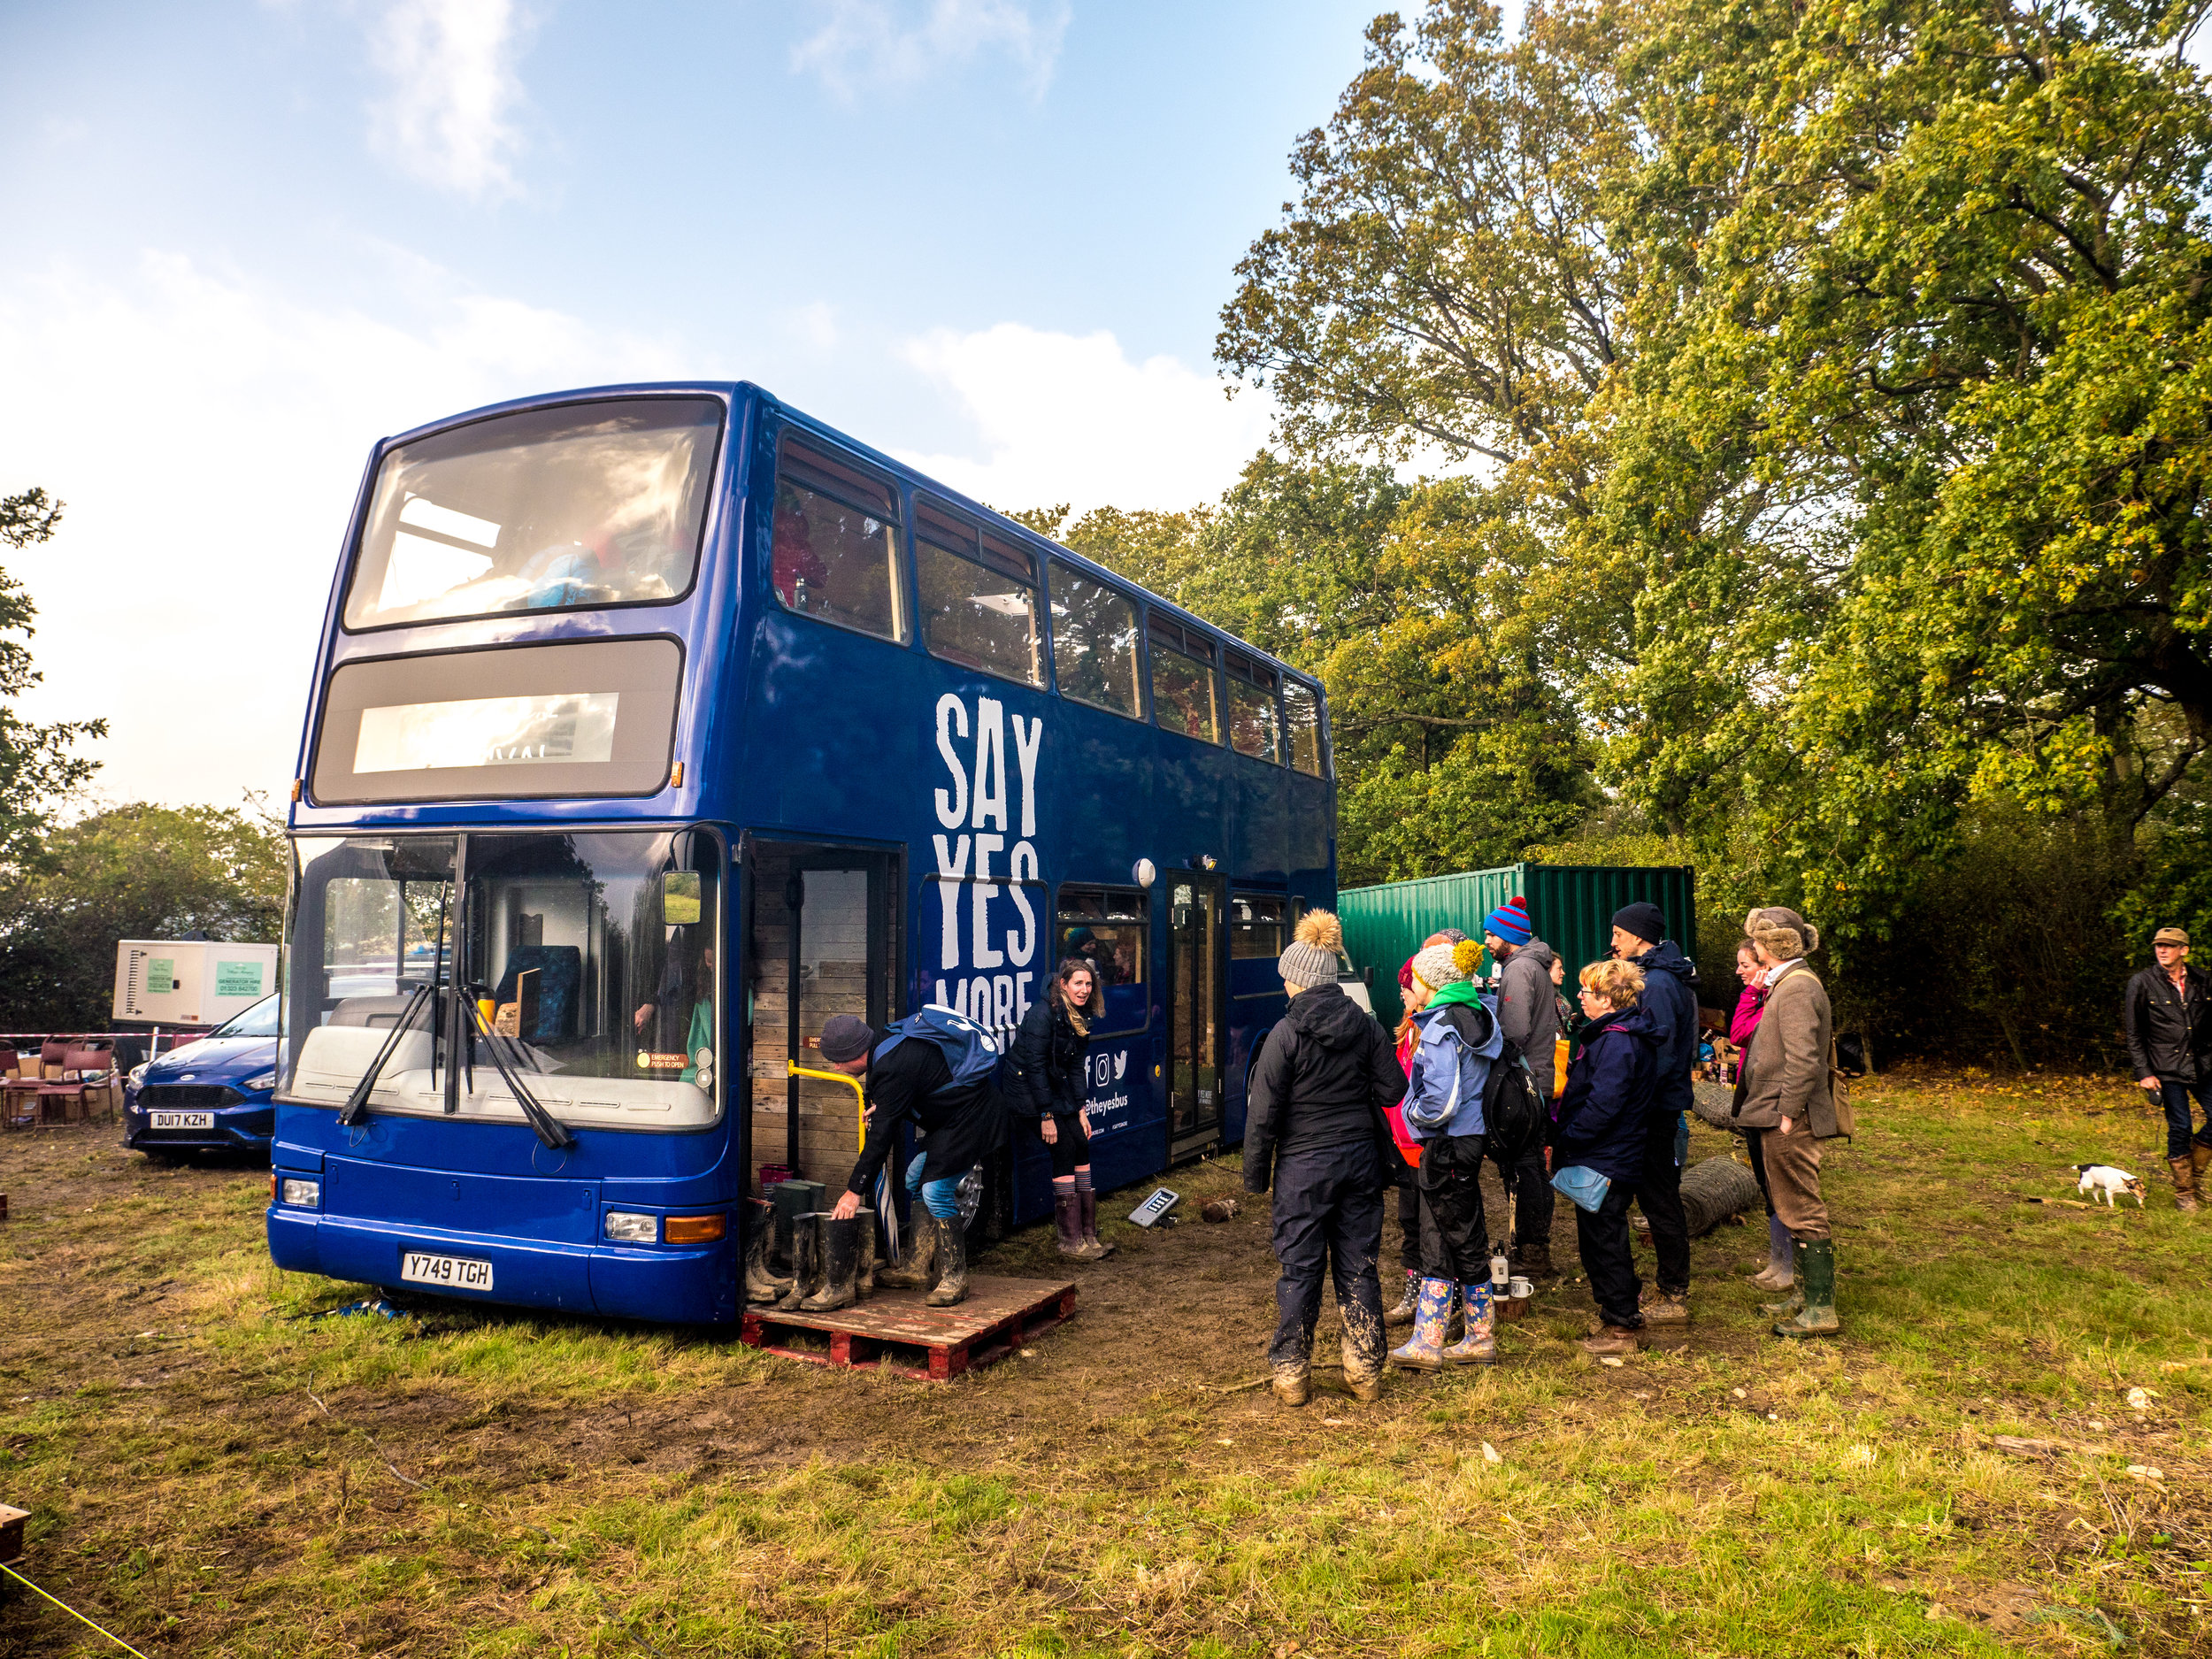 18. Yestival - Yestival was a chance to introduce people to the bus, hold a couple of talks and start to work out just how we manage groups on board. Storm Brian's rain and 50mph winds meant a no-shoe policy was introduced from the off, and it was simply awesome to see people's faces when they saw Bussy for the first time.